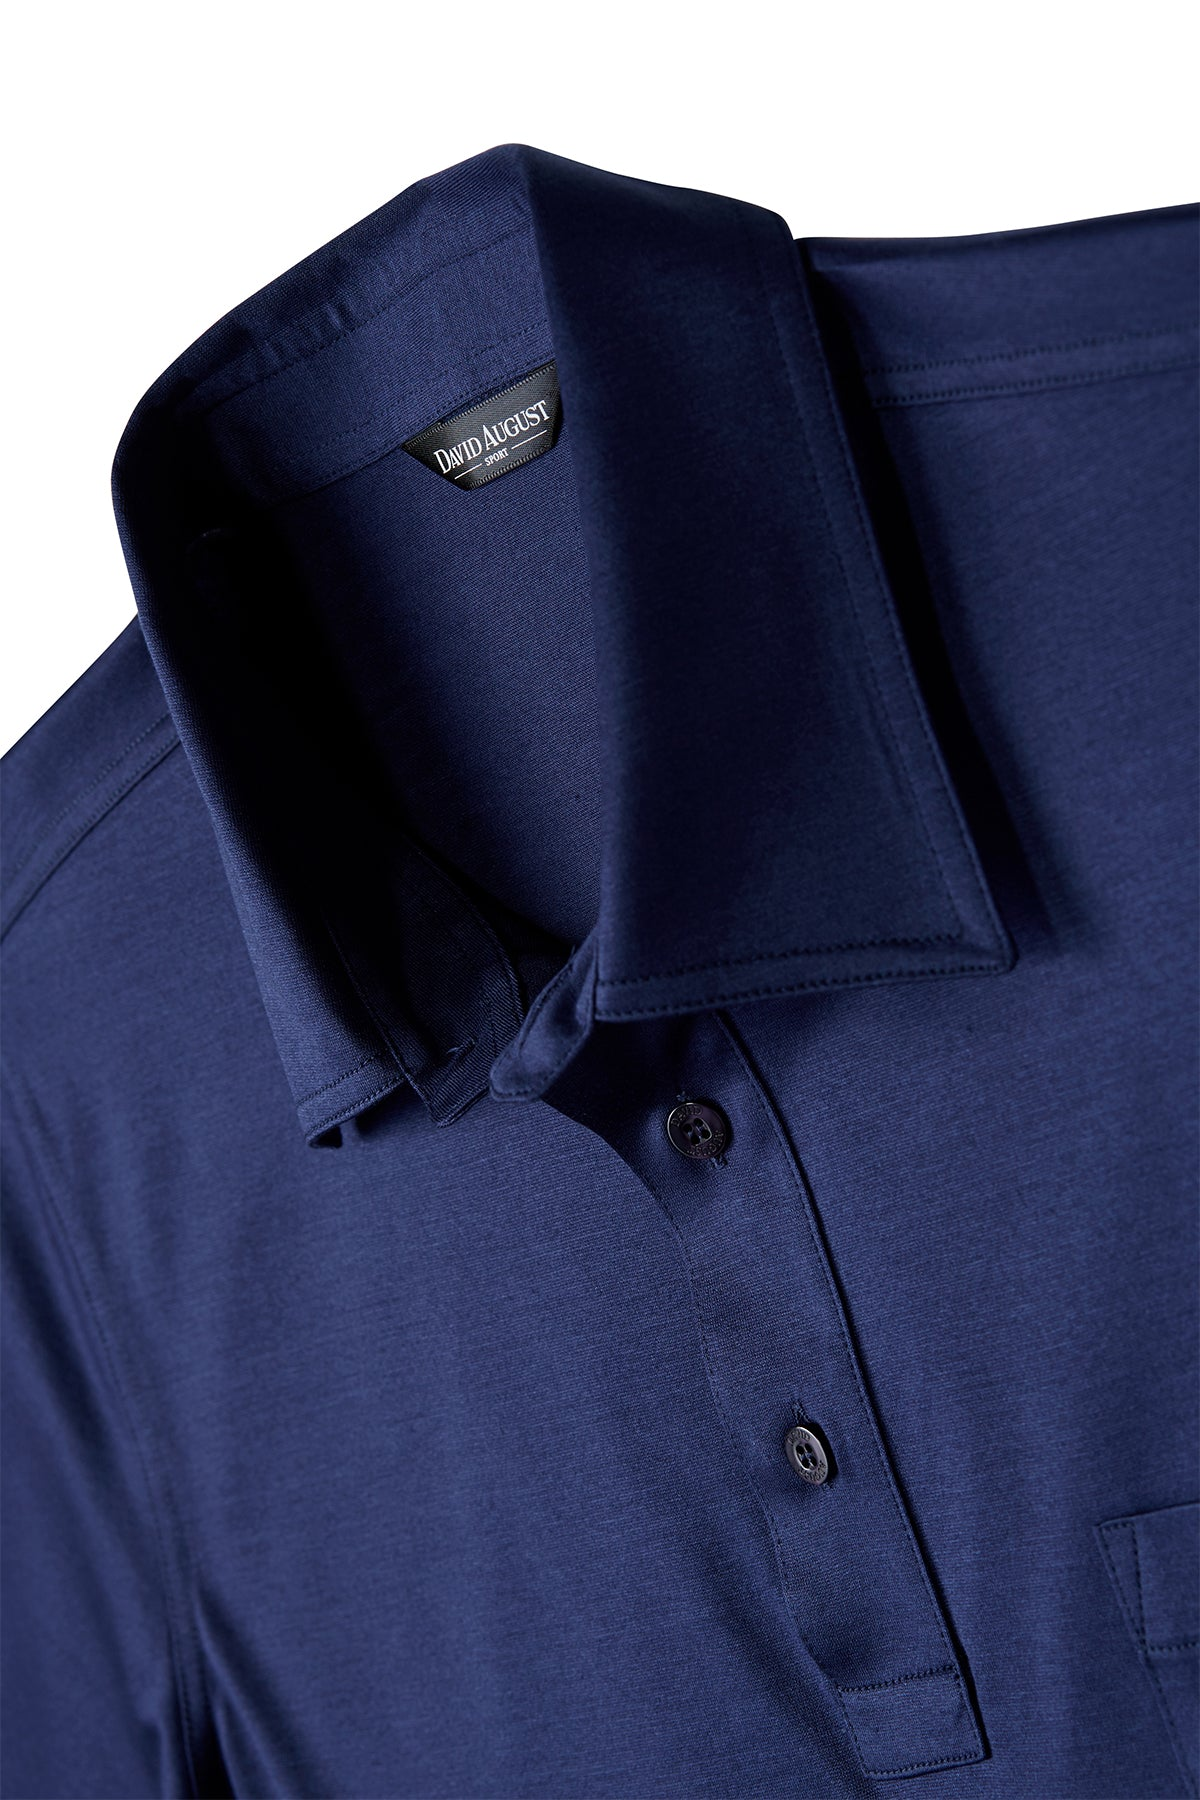 David August Mercerized Cotton Royal Navy Polo